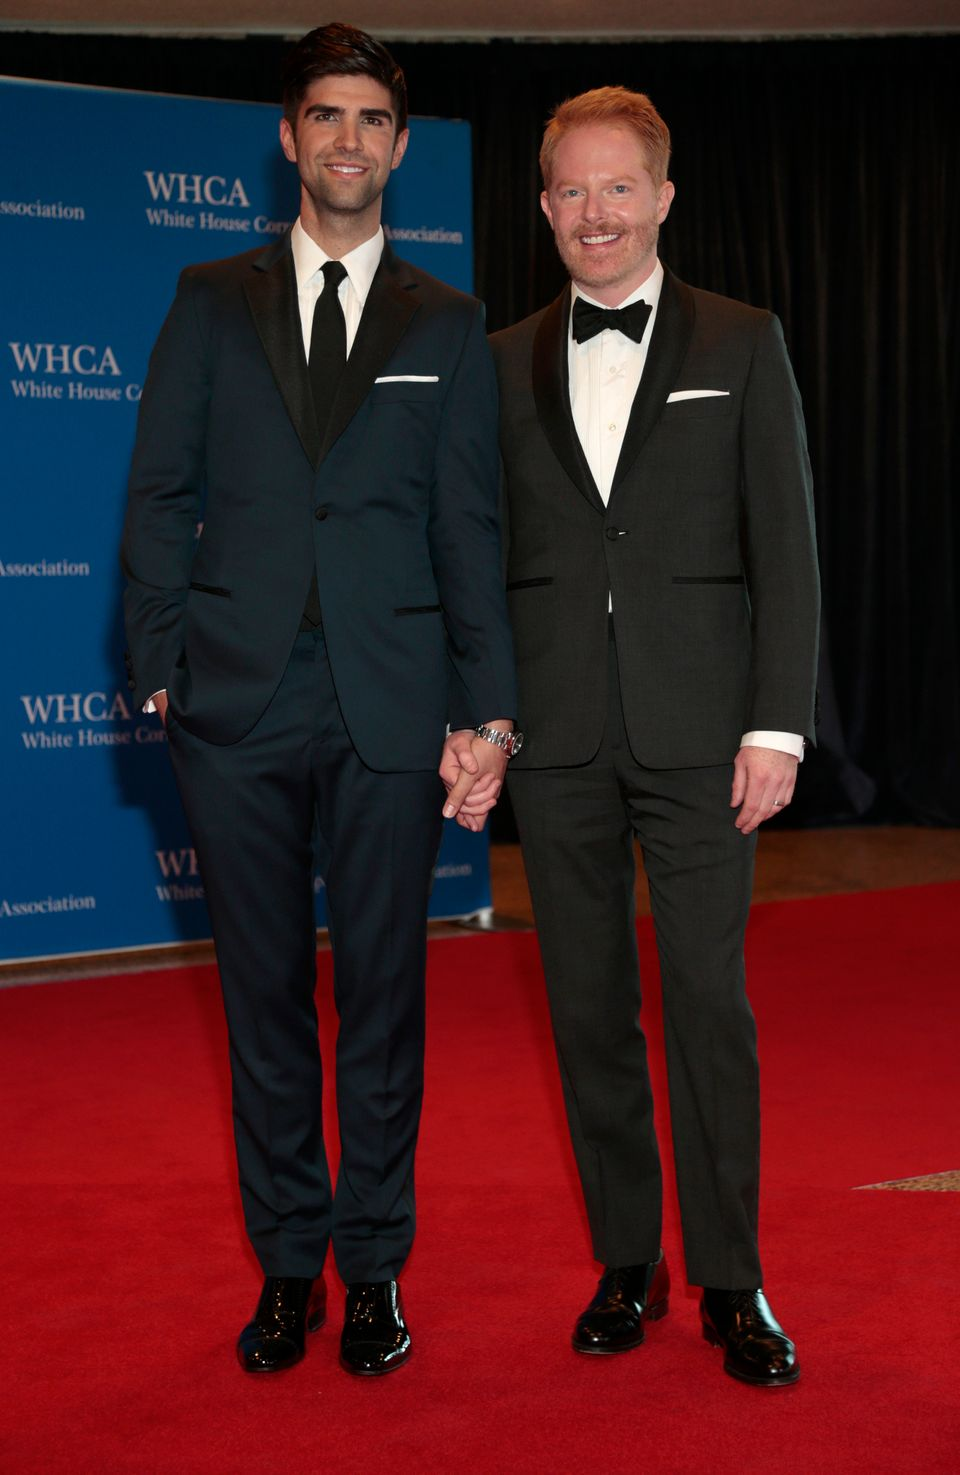 Actor Jesse Tyler Ferguson, right, and husband Justin Mikita arrive for the White House Correspondents' Association (WHCA) di